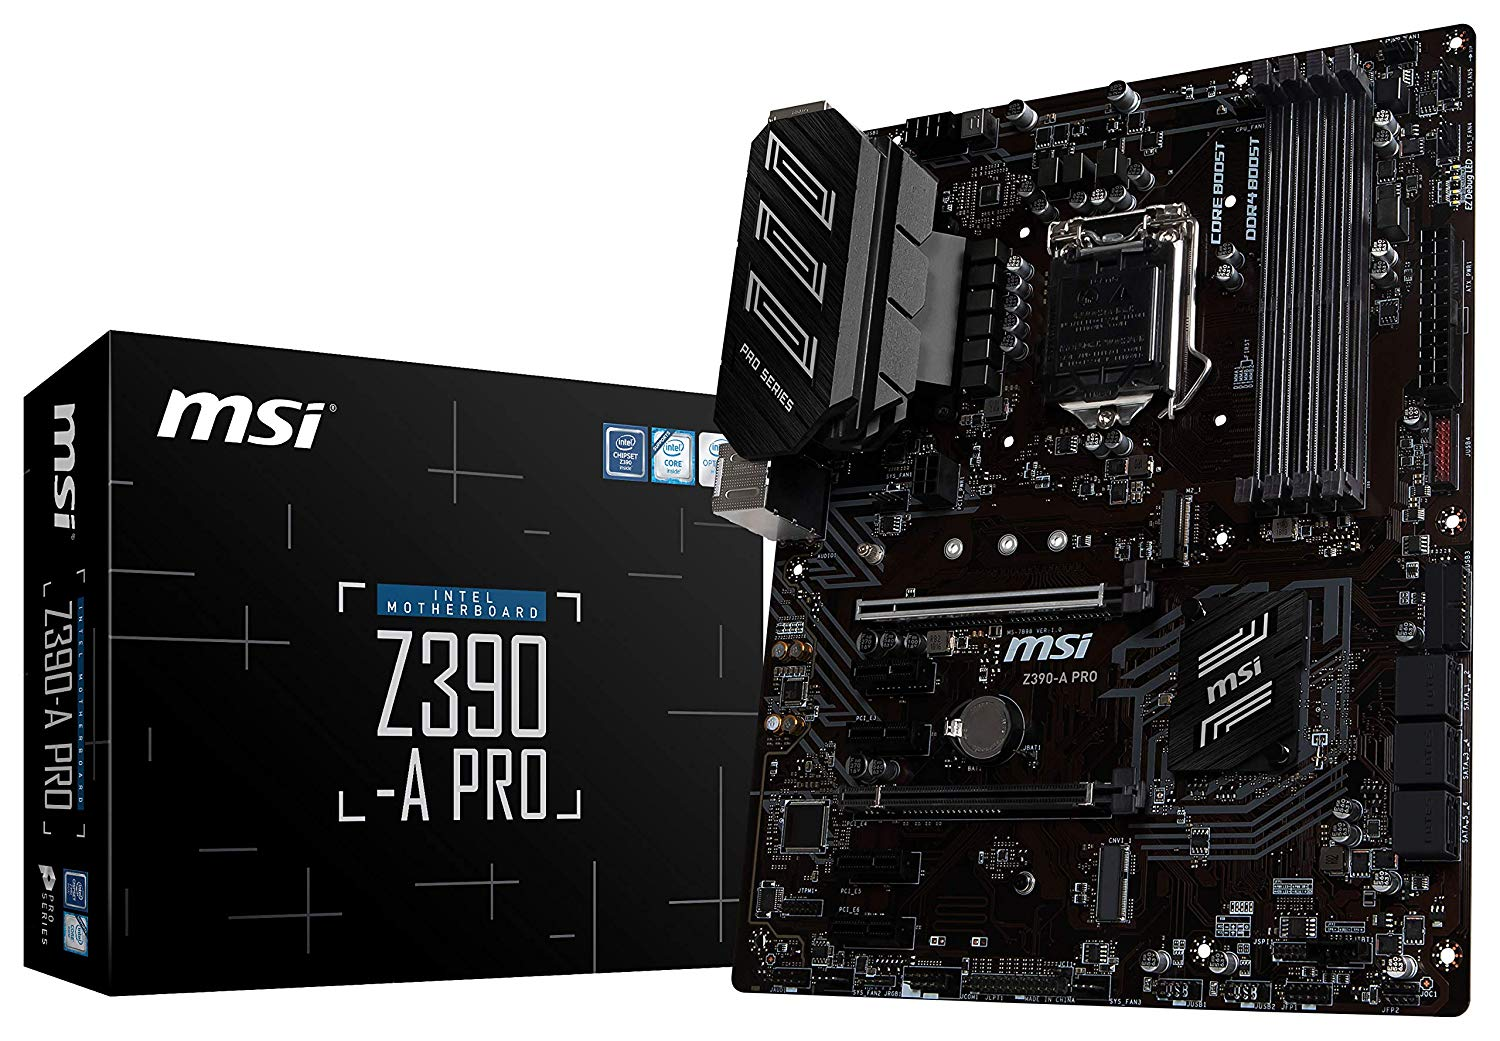 3 Motherboard - MSI Z390-A PRO LGA1151 - Best $1000 PC Build 2019